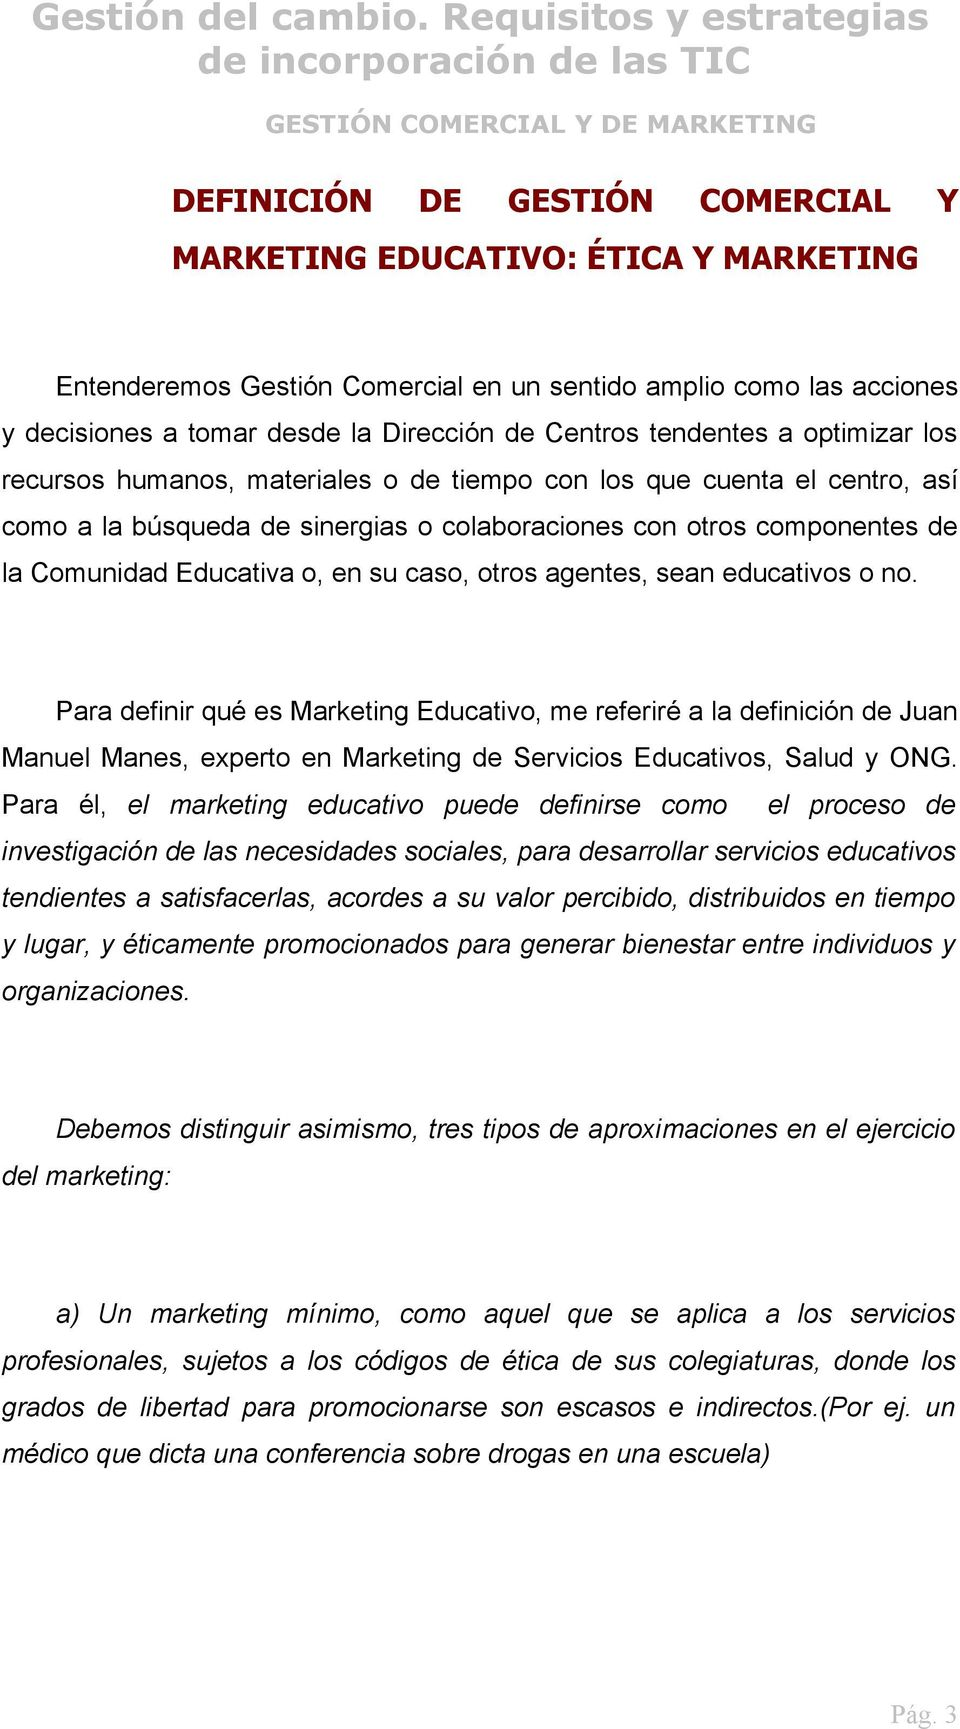 educativs n. Para definir qué es Marketing Educativ, me referiré a la definición de Juan Manuel Manes, expert en Marketing de Servicis Educativs, Salud y ONG.